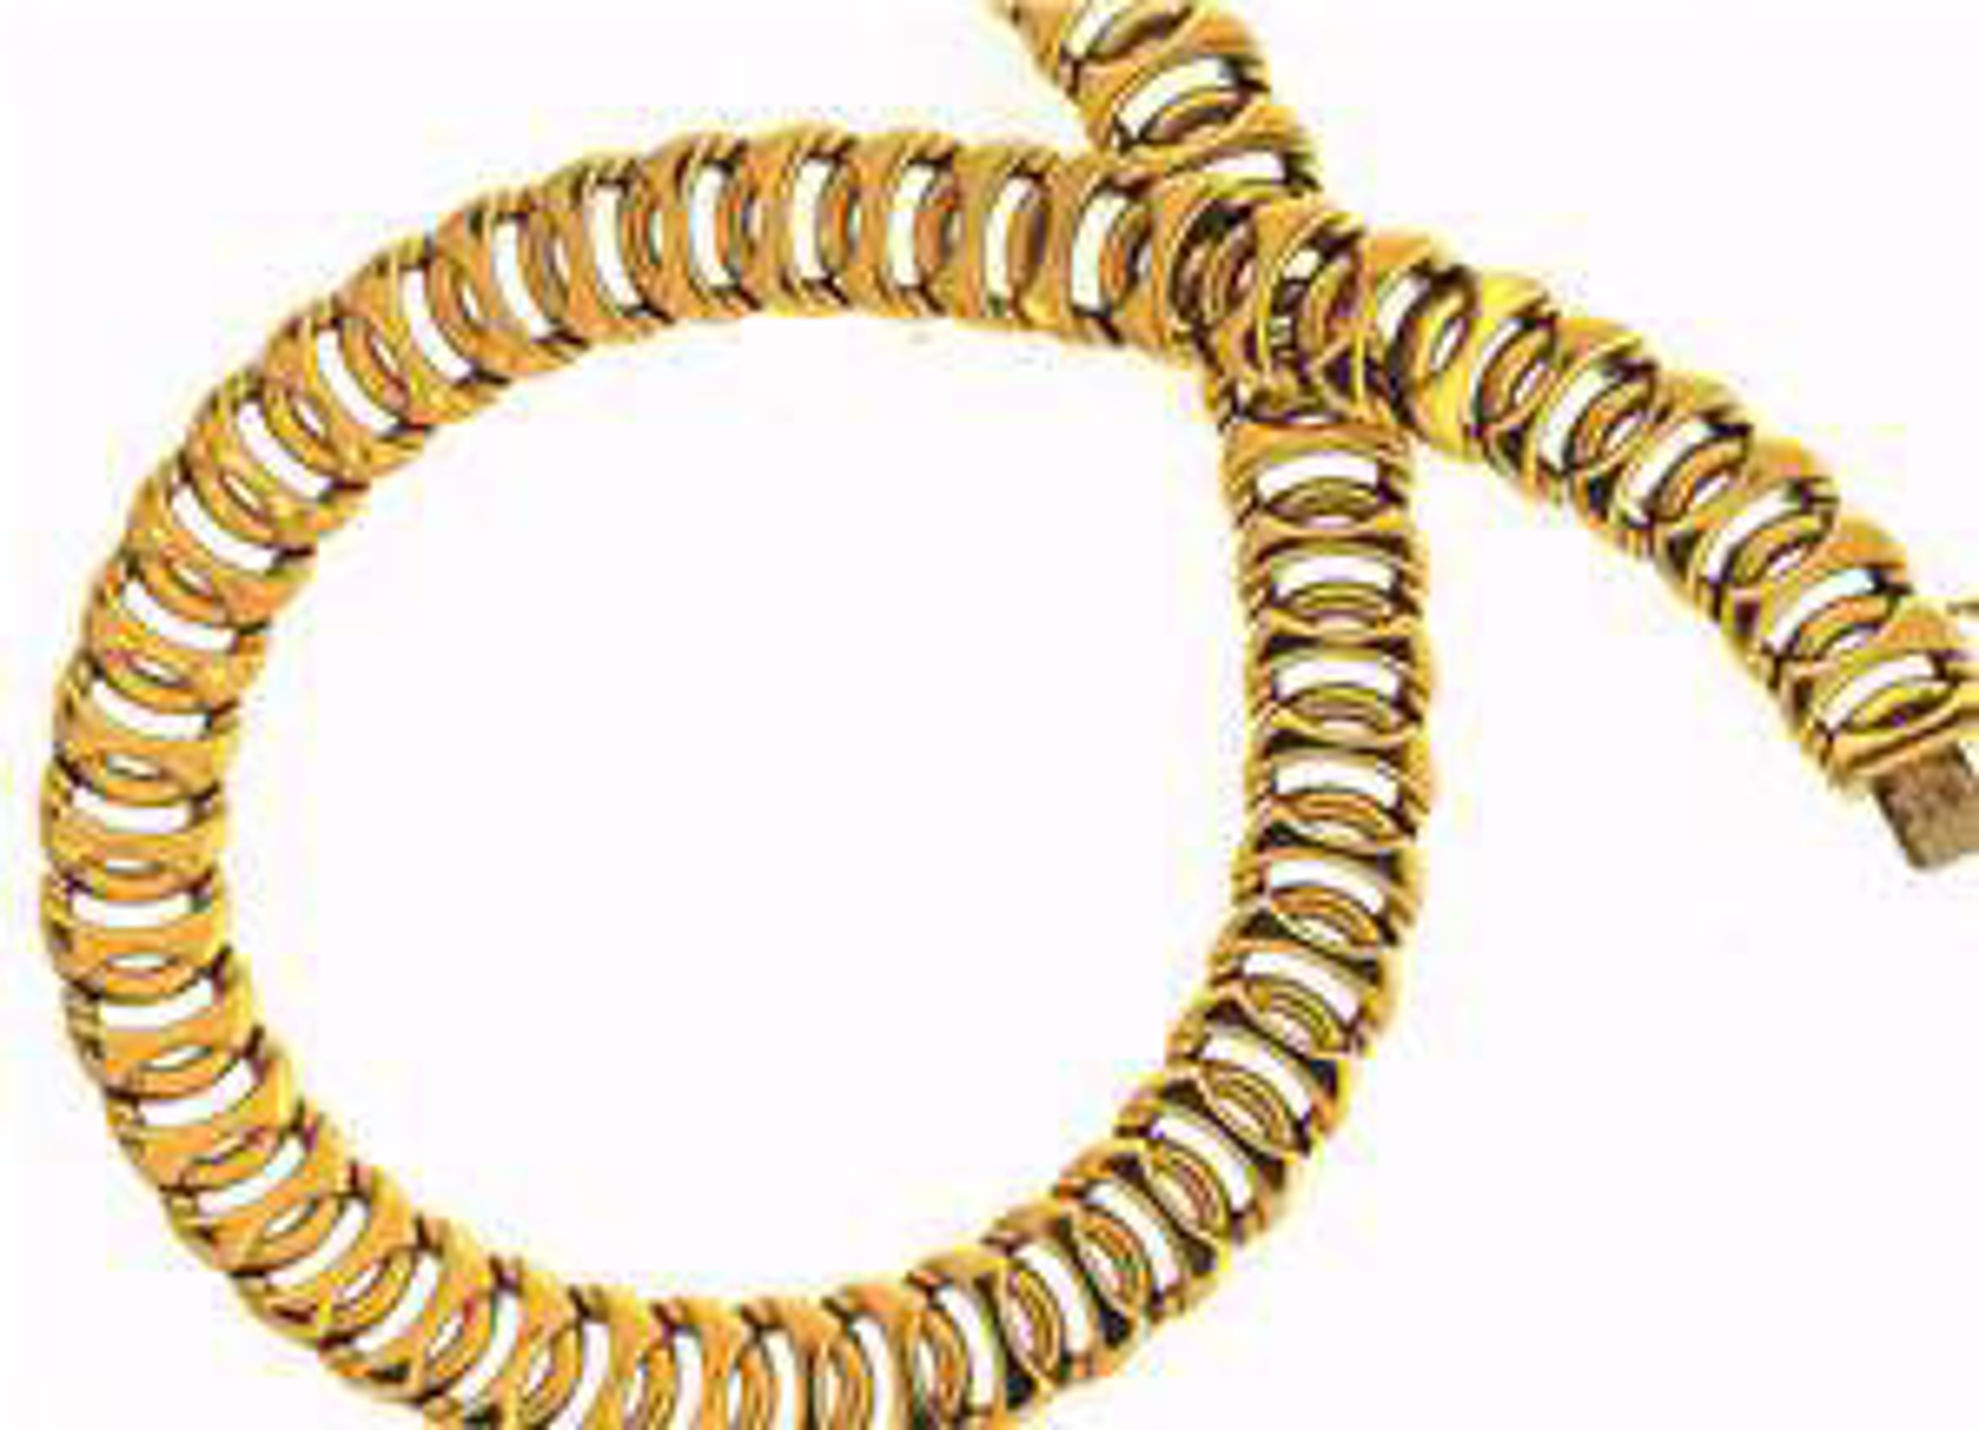 Picture of Necklaces 18kt-54.0 DWT, 84.0 Grams